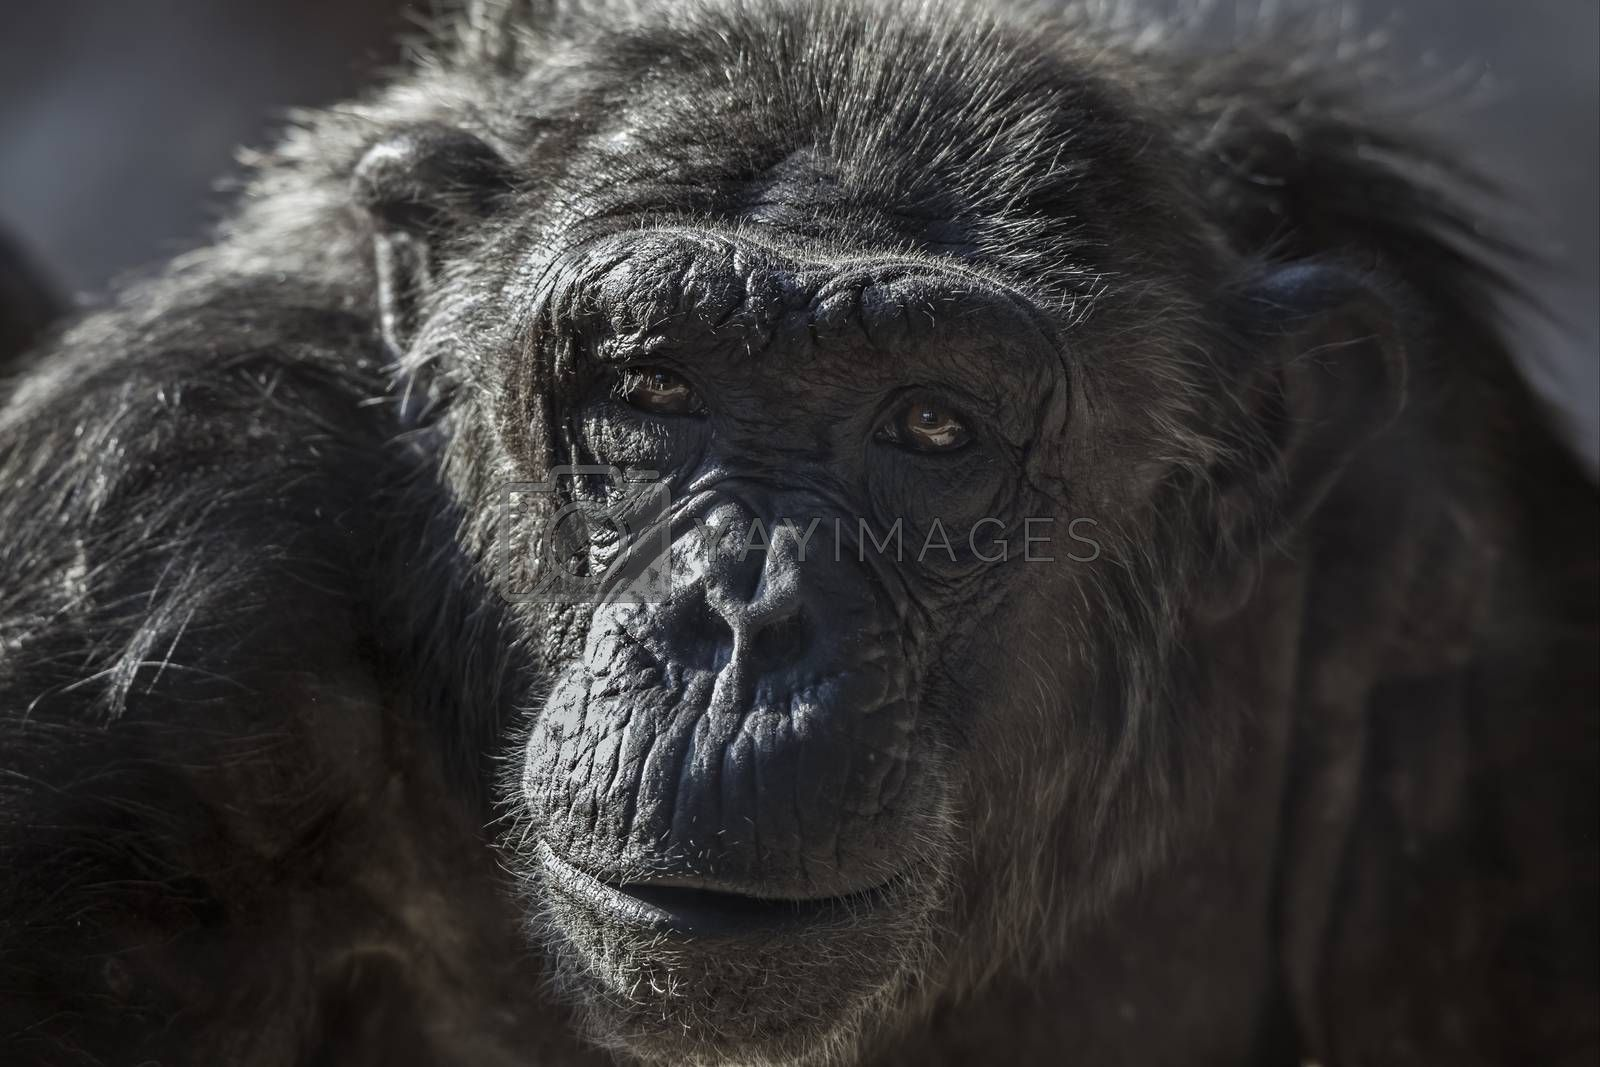 Old chimpanzee portrait at the zoo Barcelona, in Spain